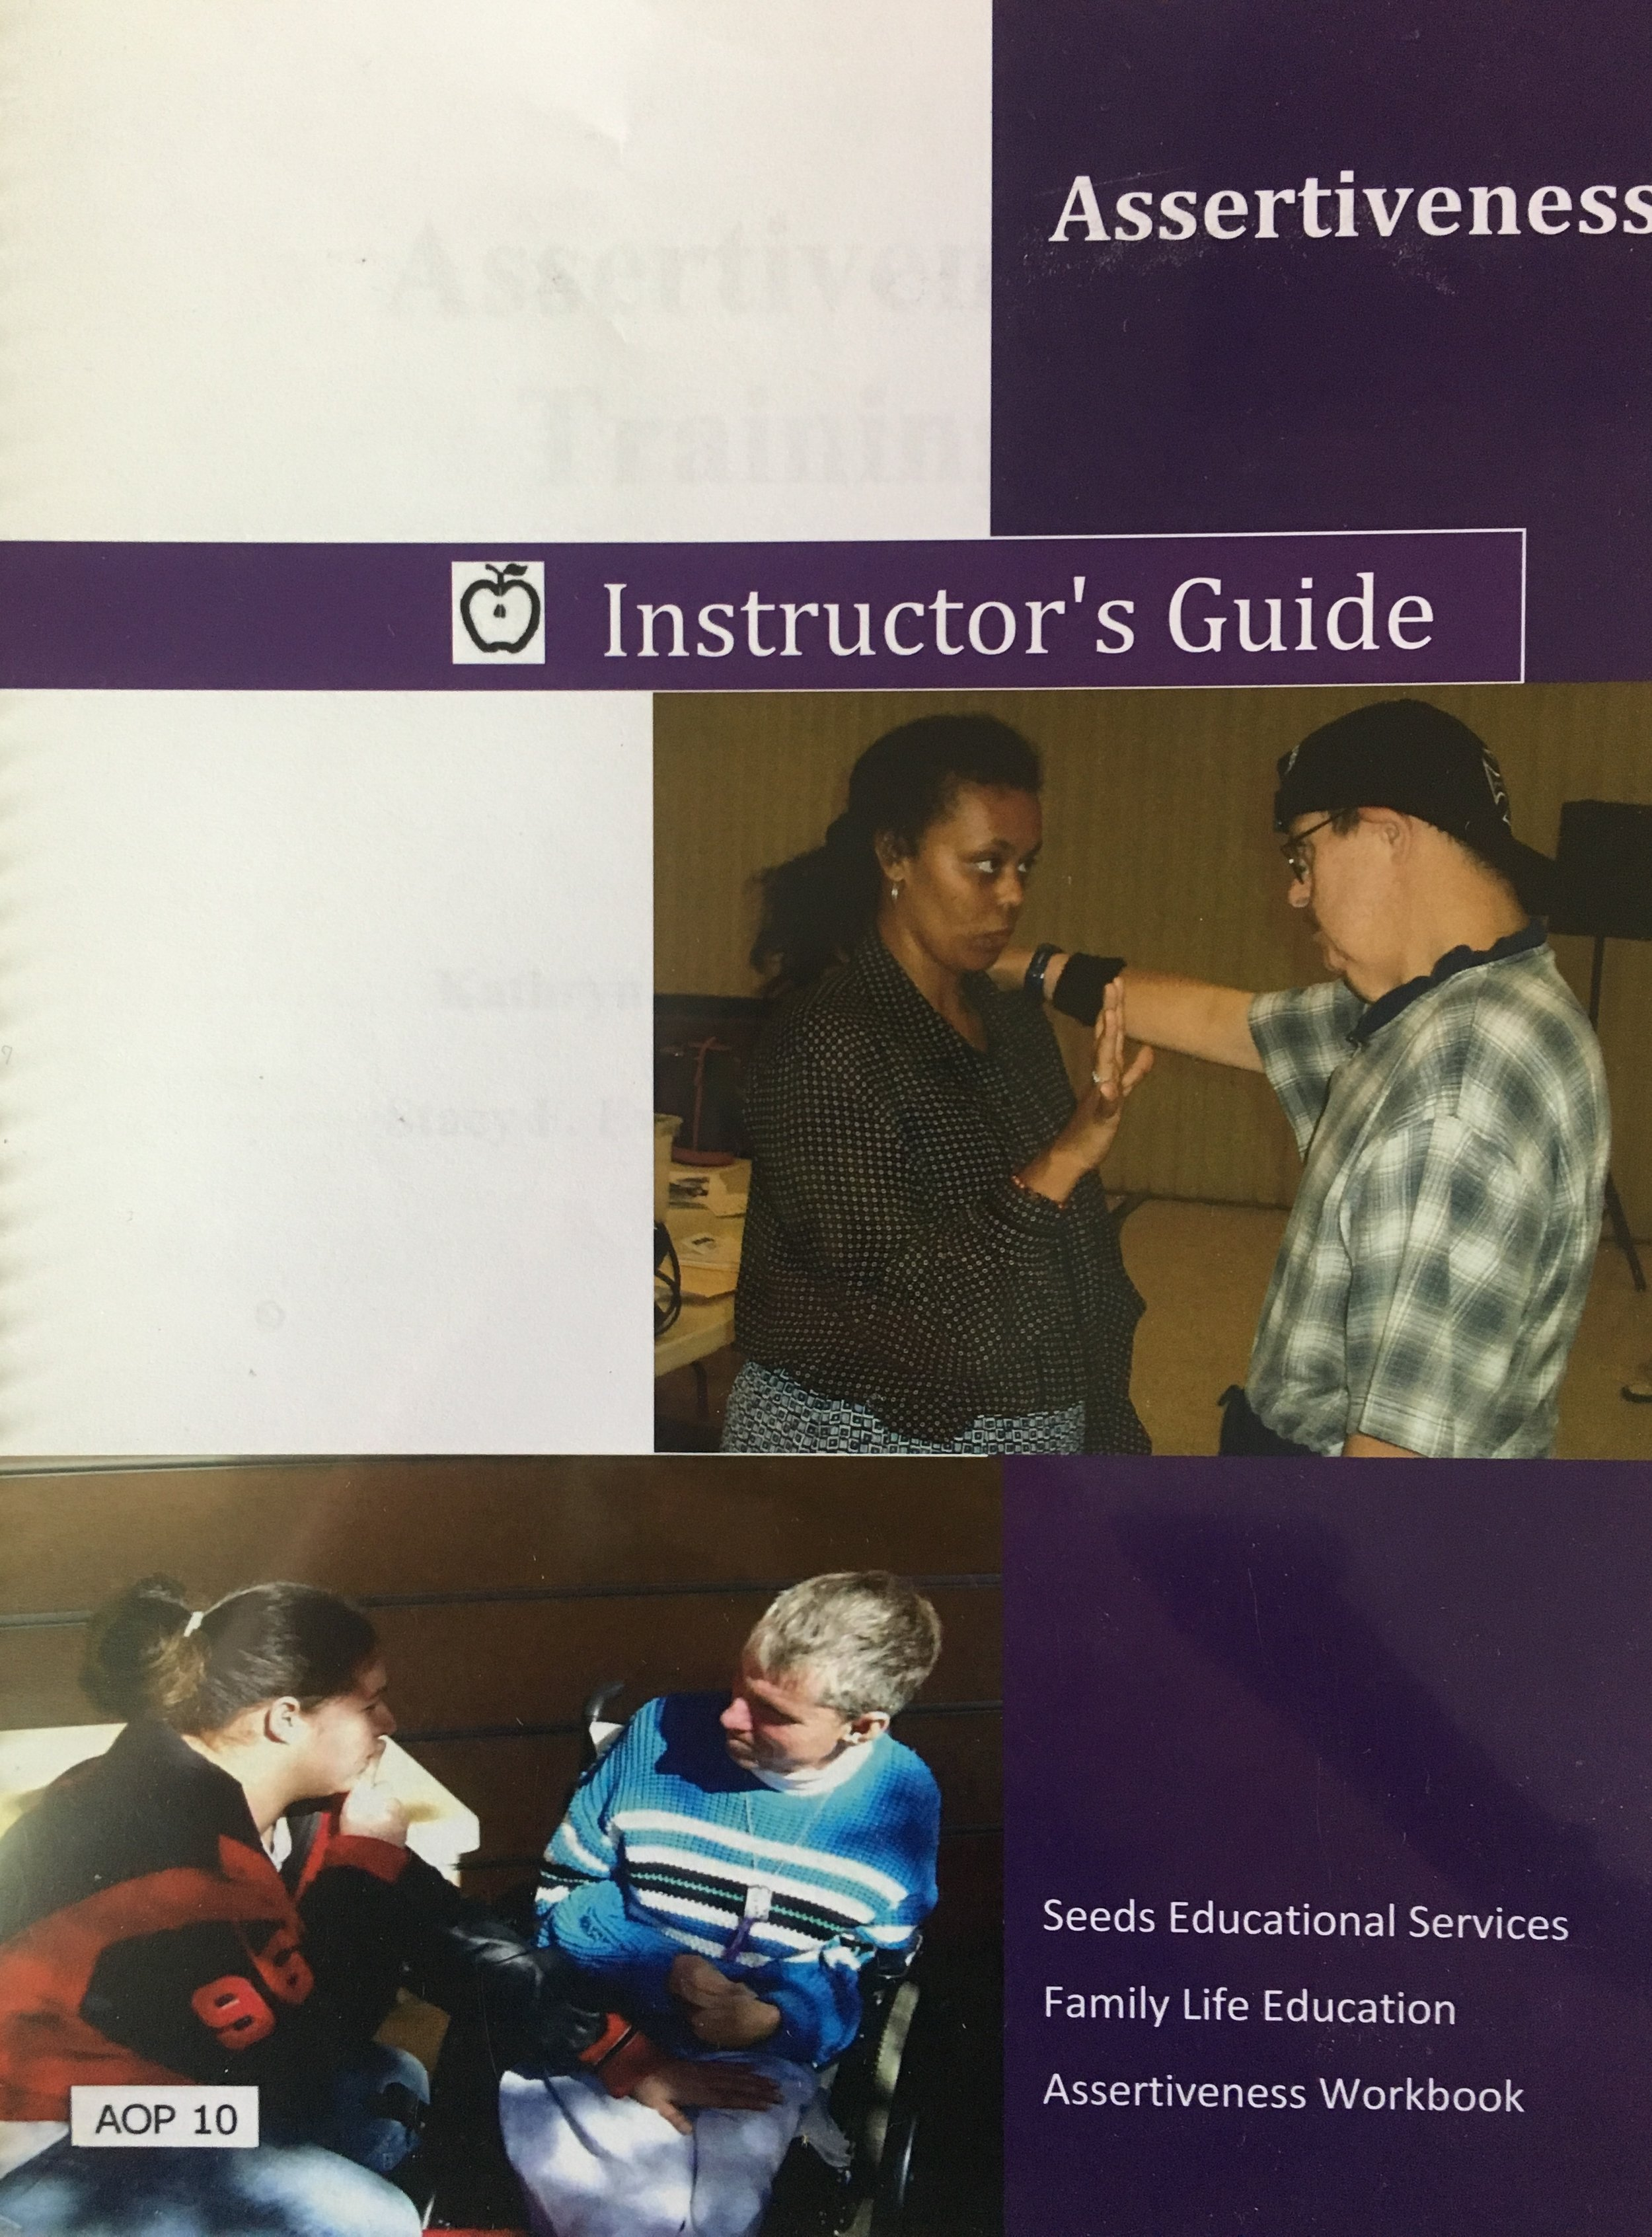 """ASSERTIVENESS - The SEEDS Assertiveness curriculum works on teaching students assertiveness skills. The instructor's guide and workbook cover topics of personal space, practicing assertiveness words and phrases, when to get loud and closer to people, and how to say """"No,"""" and mean it.Includes:7 PowerPoint Lessons, Instructor's Guides, and Student WorkbooksPlease call for pricing."""